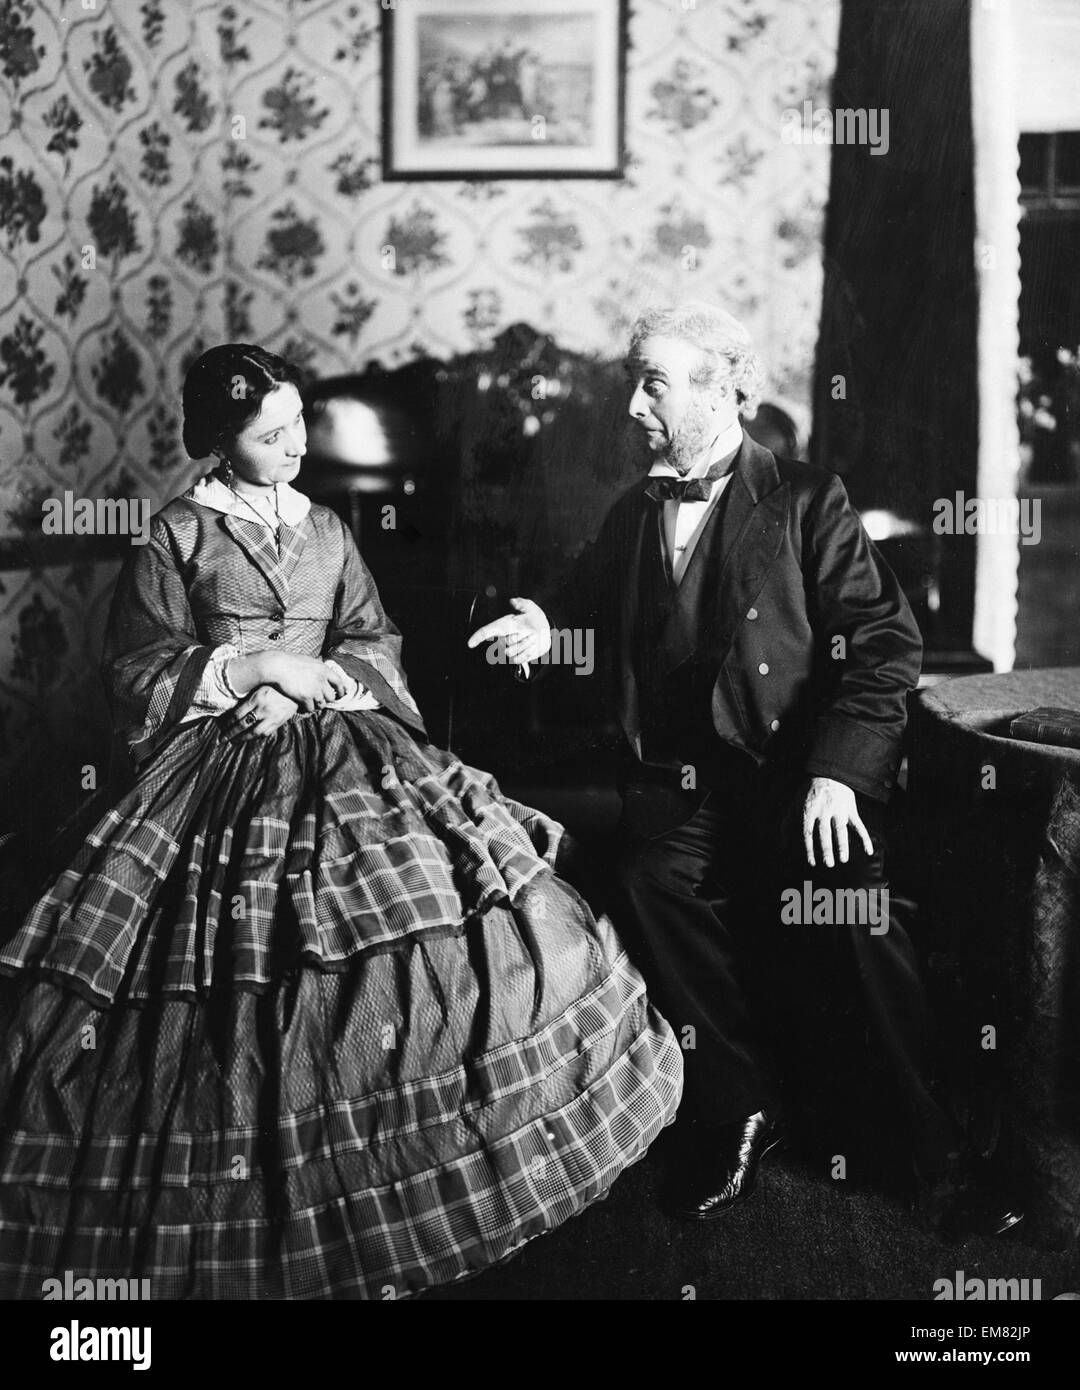 A scene from the play ' Bunty pulls the strings', playing at the Haymarket Theatre. 20th July 1911 - Stock Image